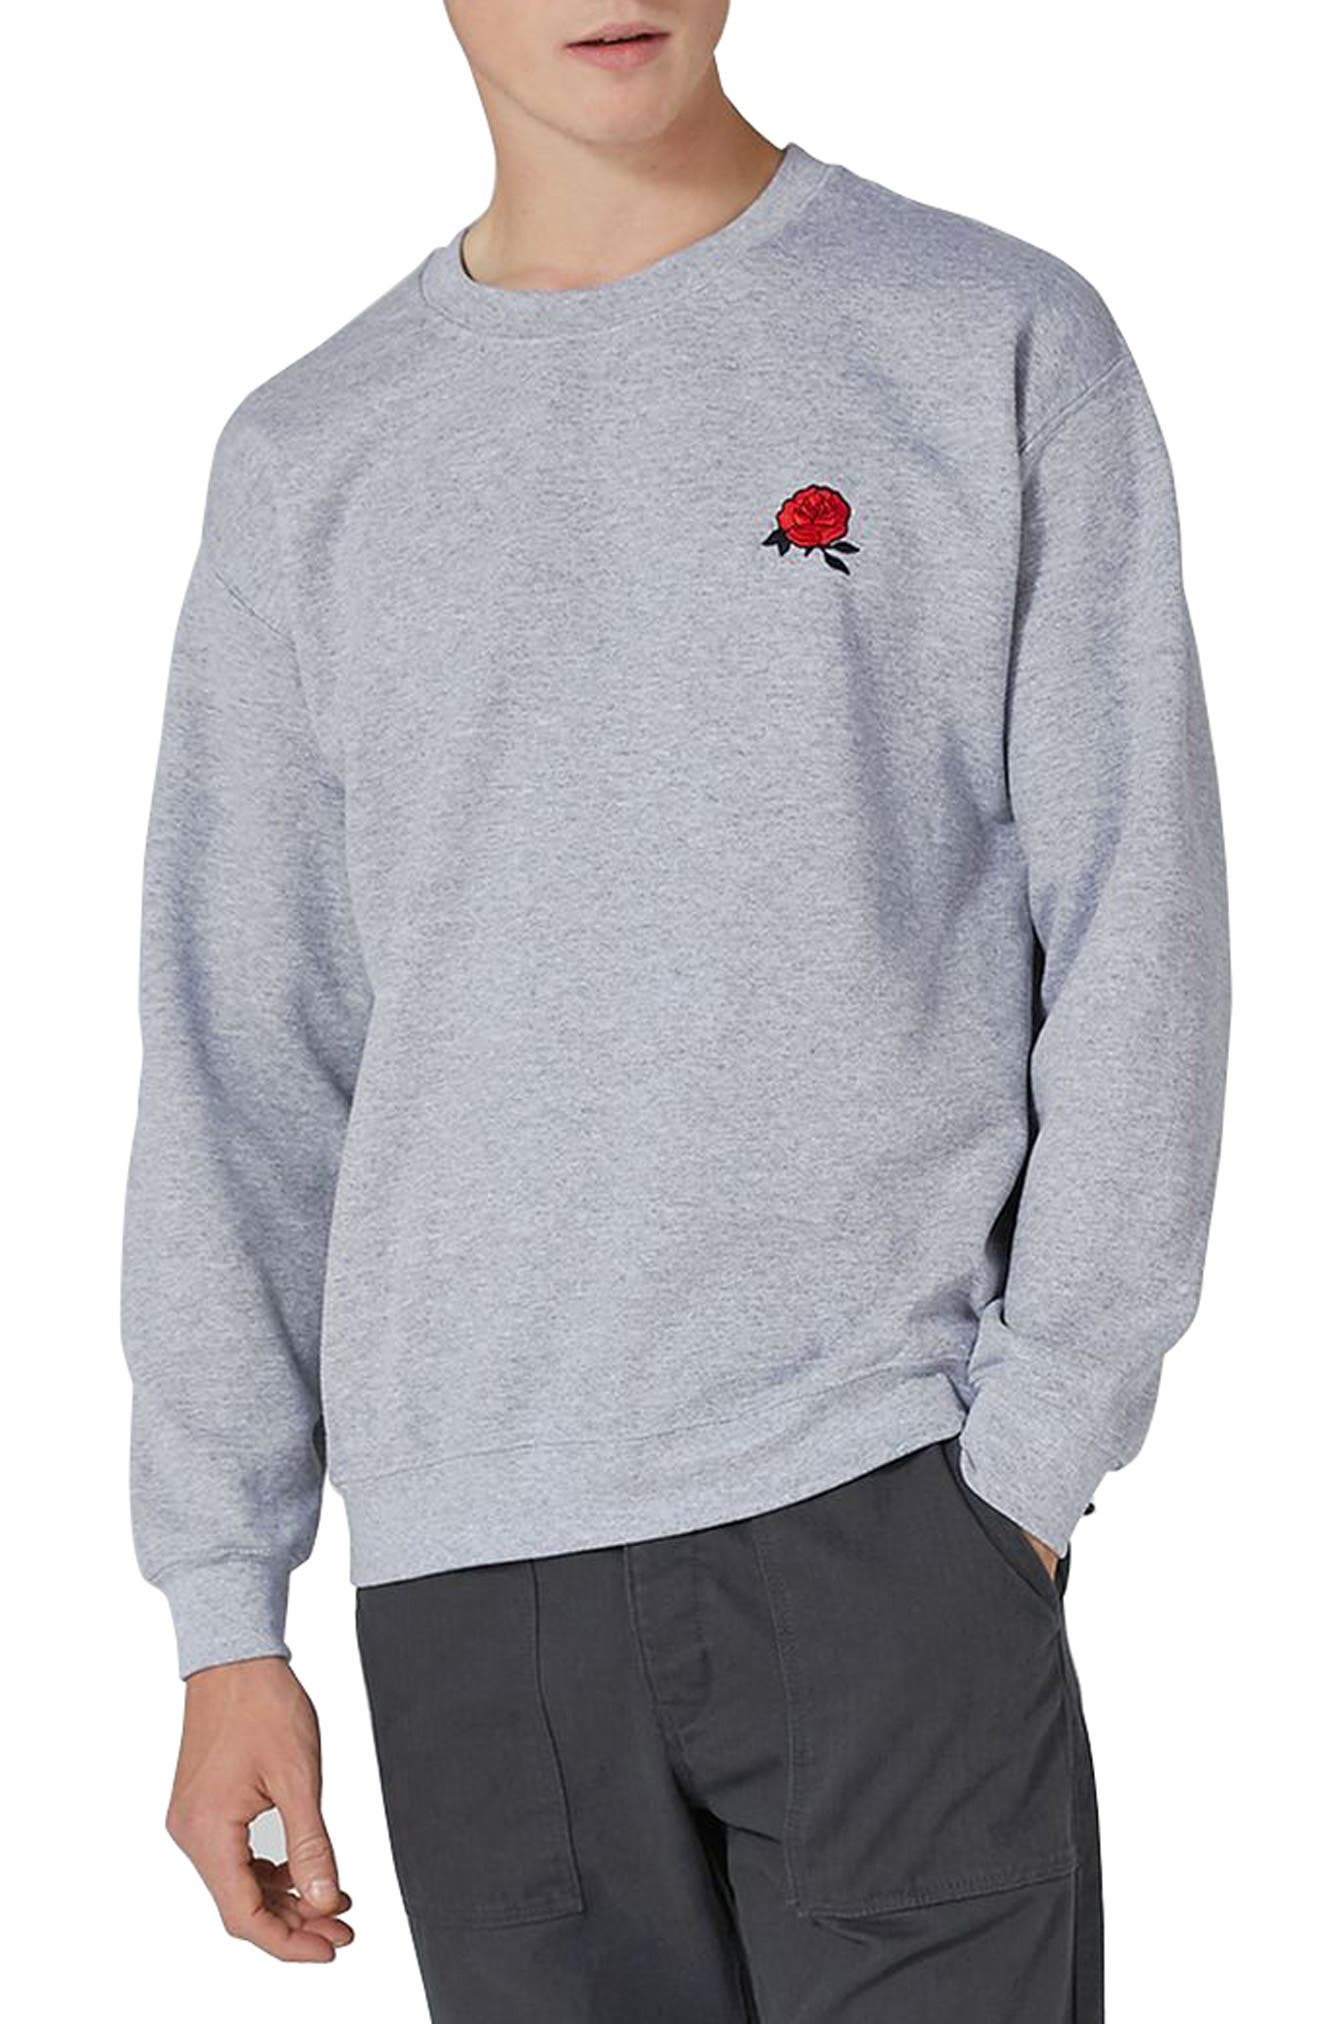 Rose Embroidered Sweatshirt,                             Main thumbnail 1, color,                             Light Grey